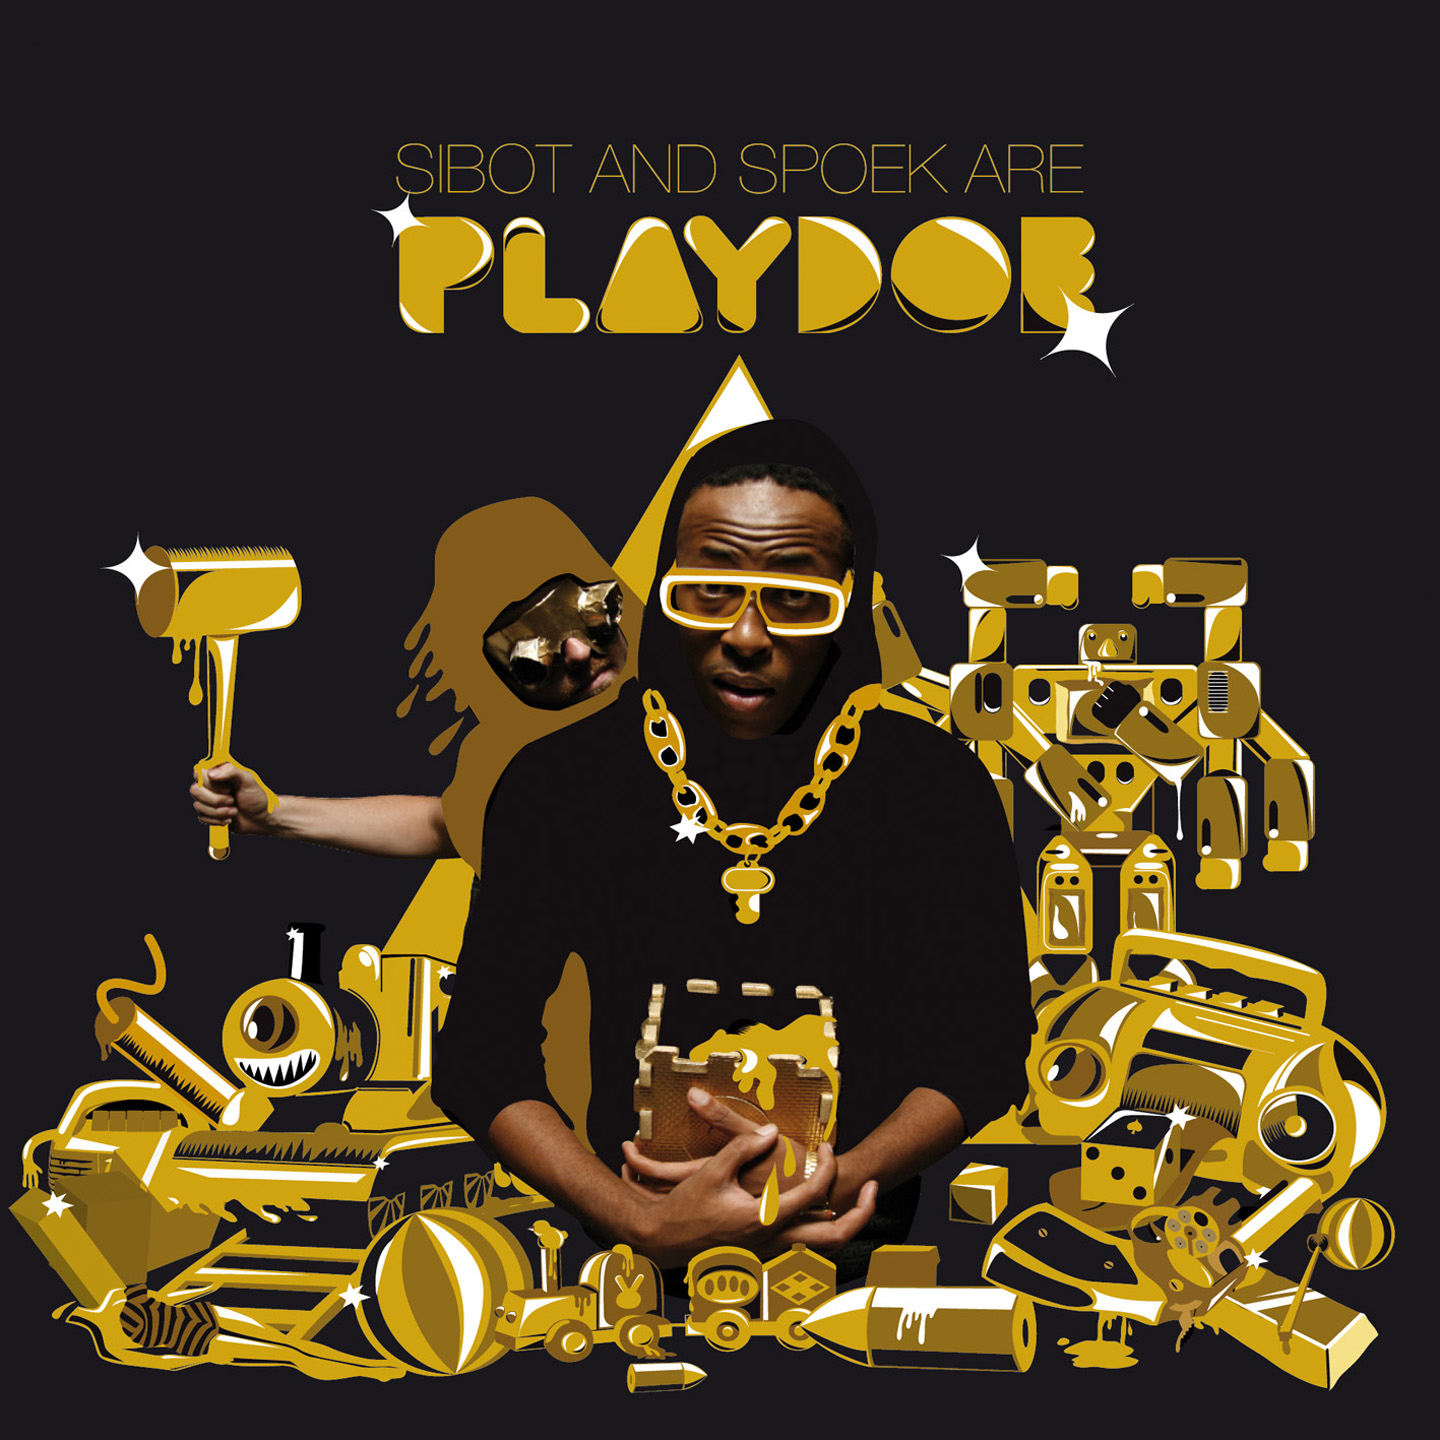 Sibot & Spoek are Playdoe